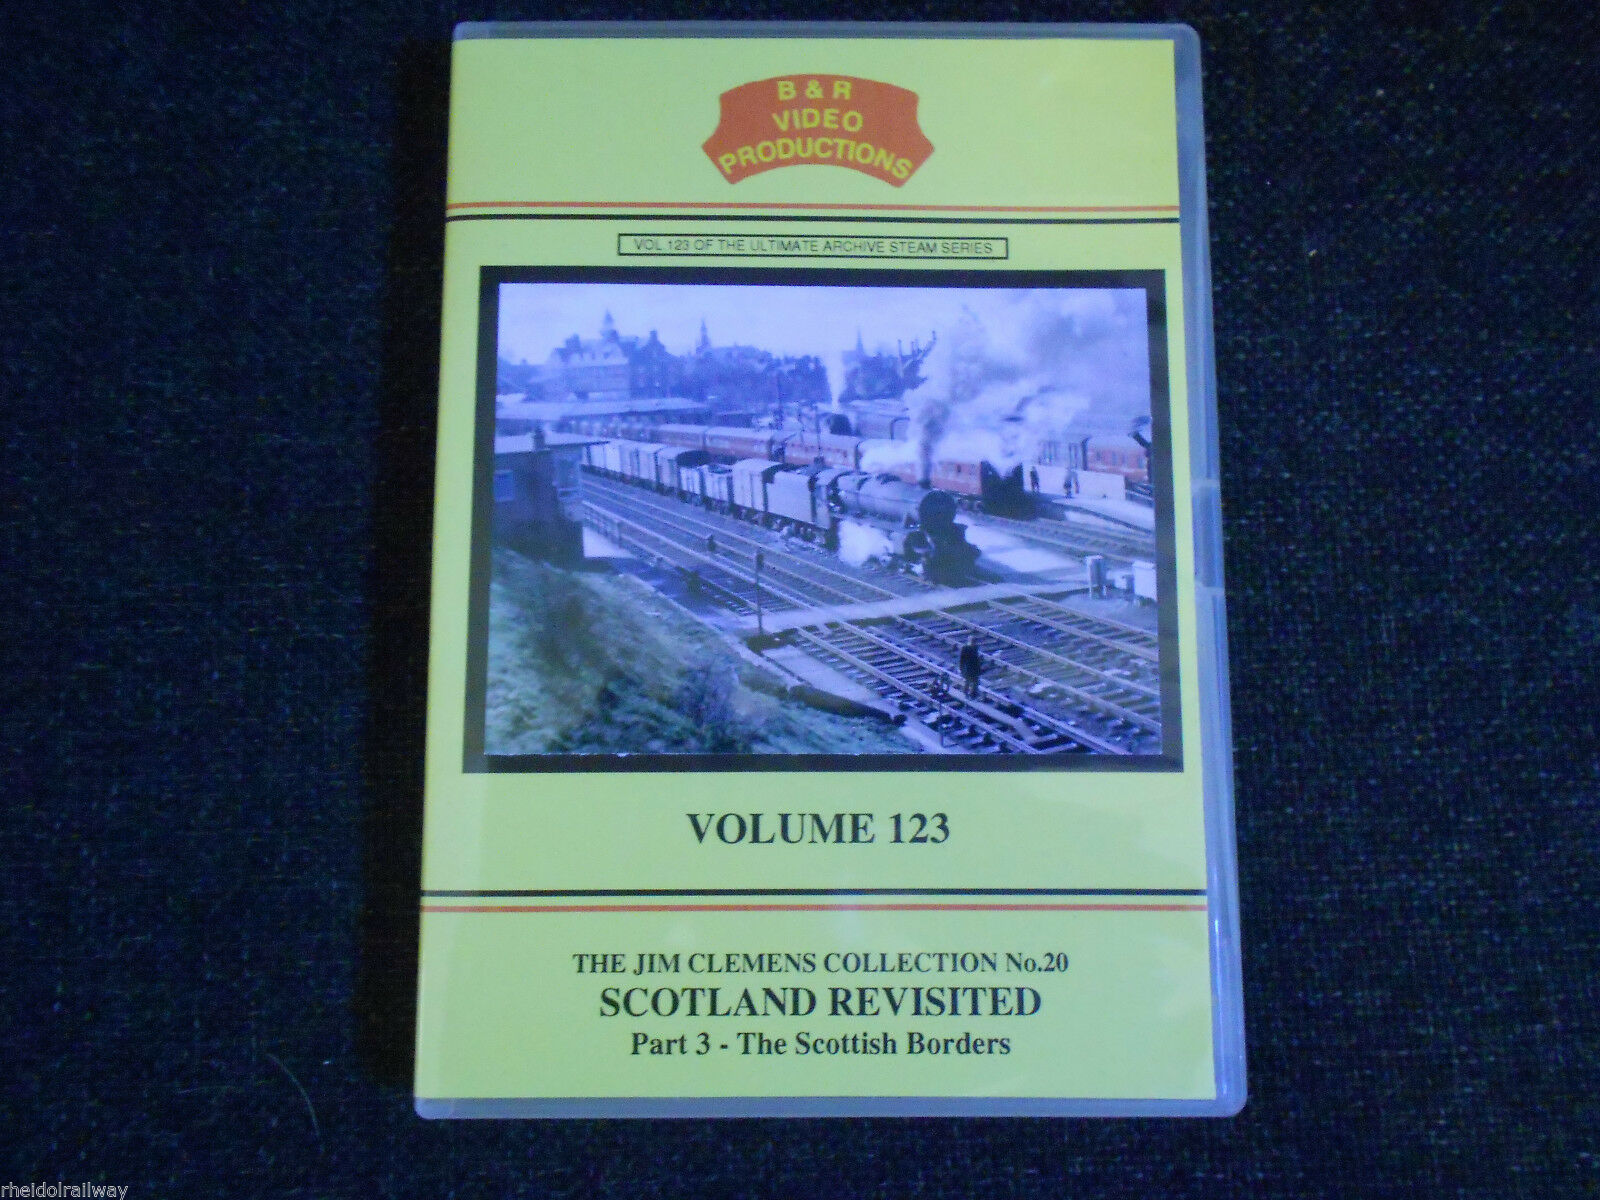 Tweedmouth, Scotland Revisited Part 3, The Scottish Borders B&R Vol 123 DVD - The Vale of Rheidol Railway